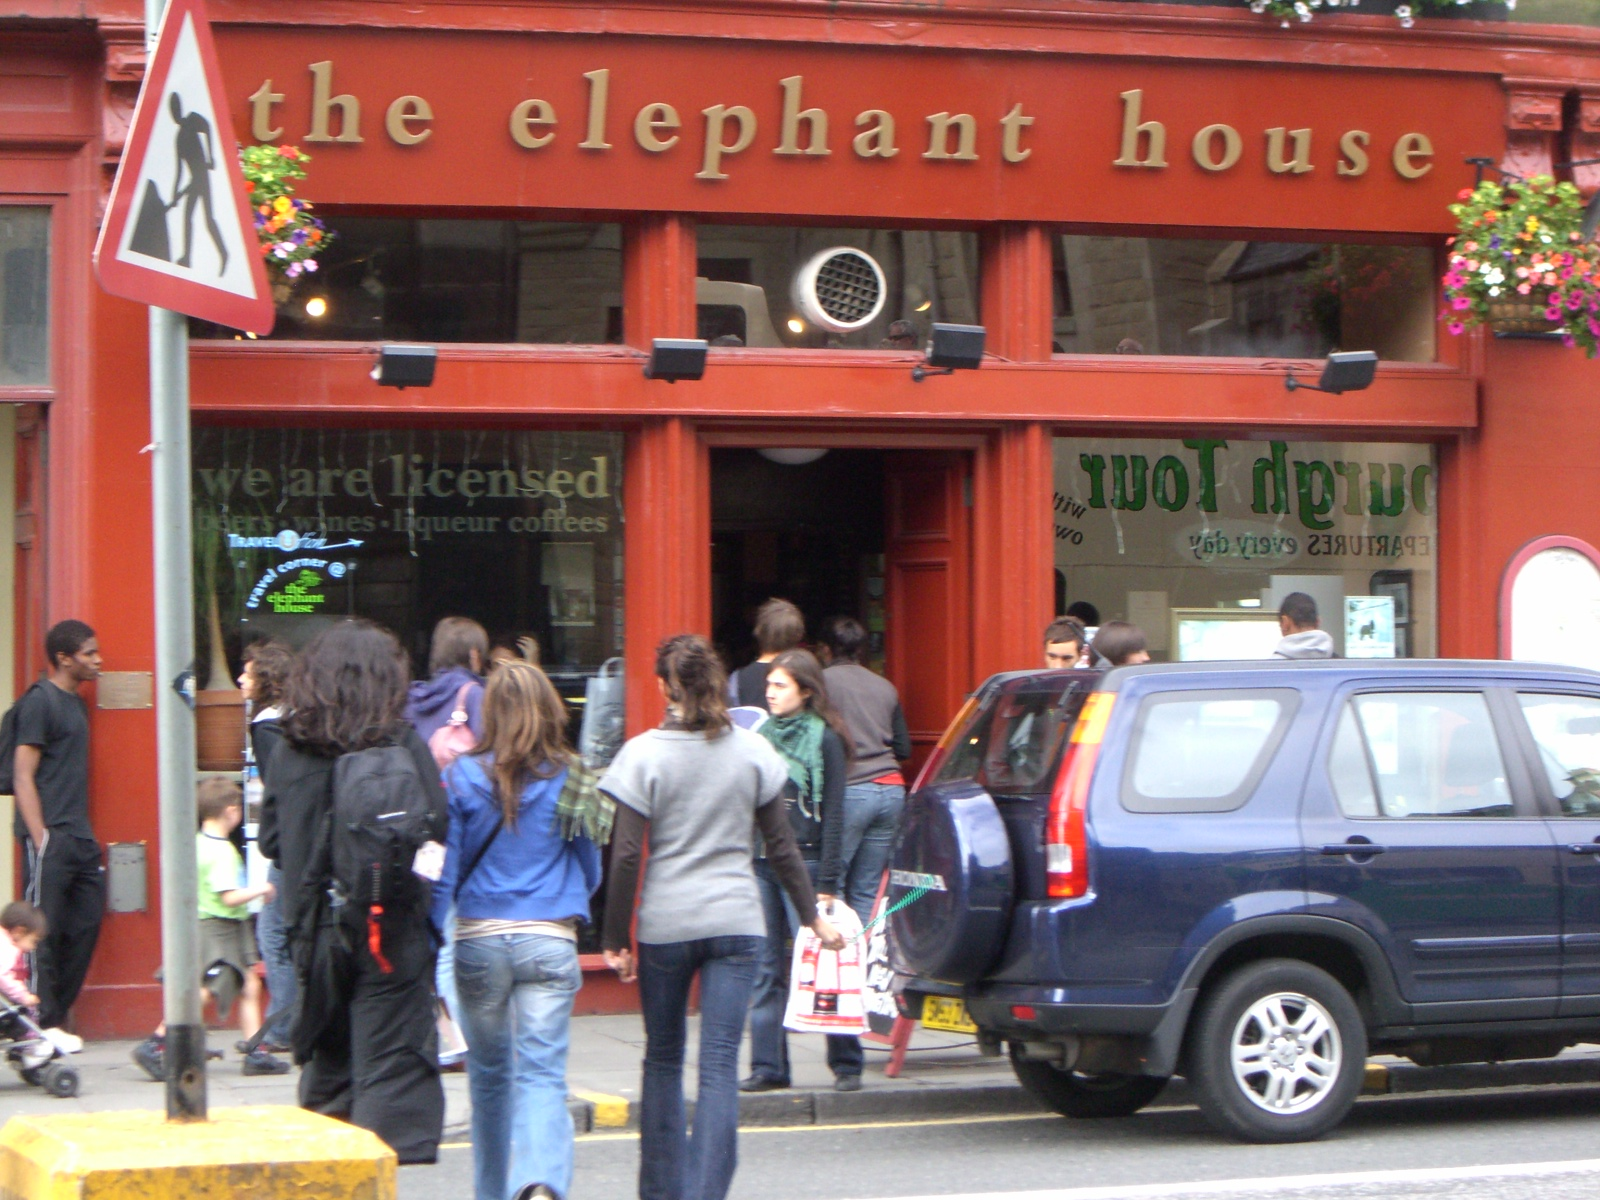 The Elephant House in Edinburgh - where J.K. Rowling scrawled the original ideas for 'Harry Potter' on napkins. I took a handful of napkins - and scrawled a few ideas of my own - for good measure!